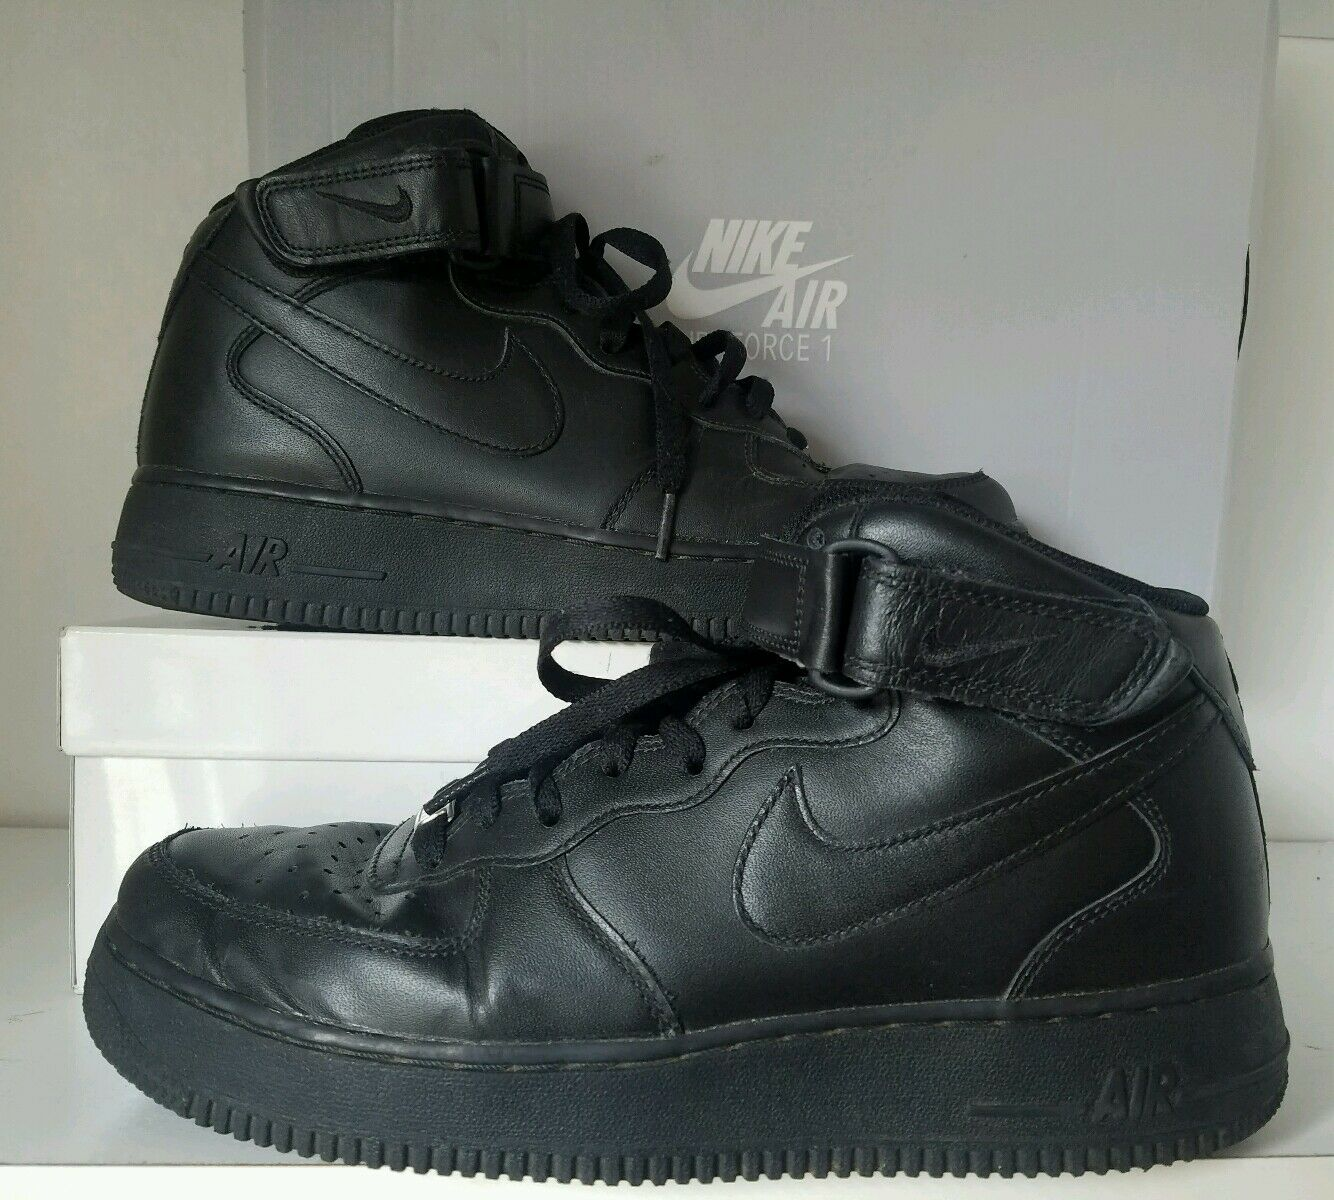 NIKE MENS AIR FORCE 1 MID 315123-001       SIZE 9 US